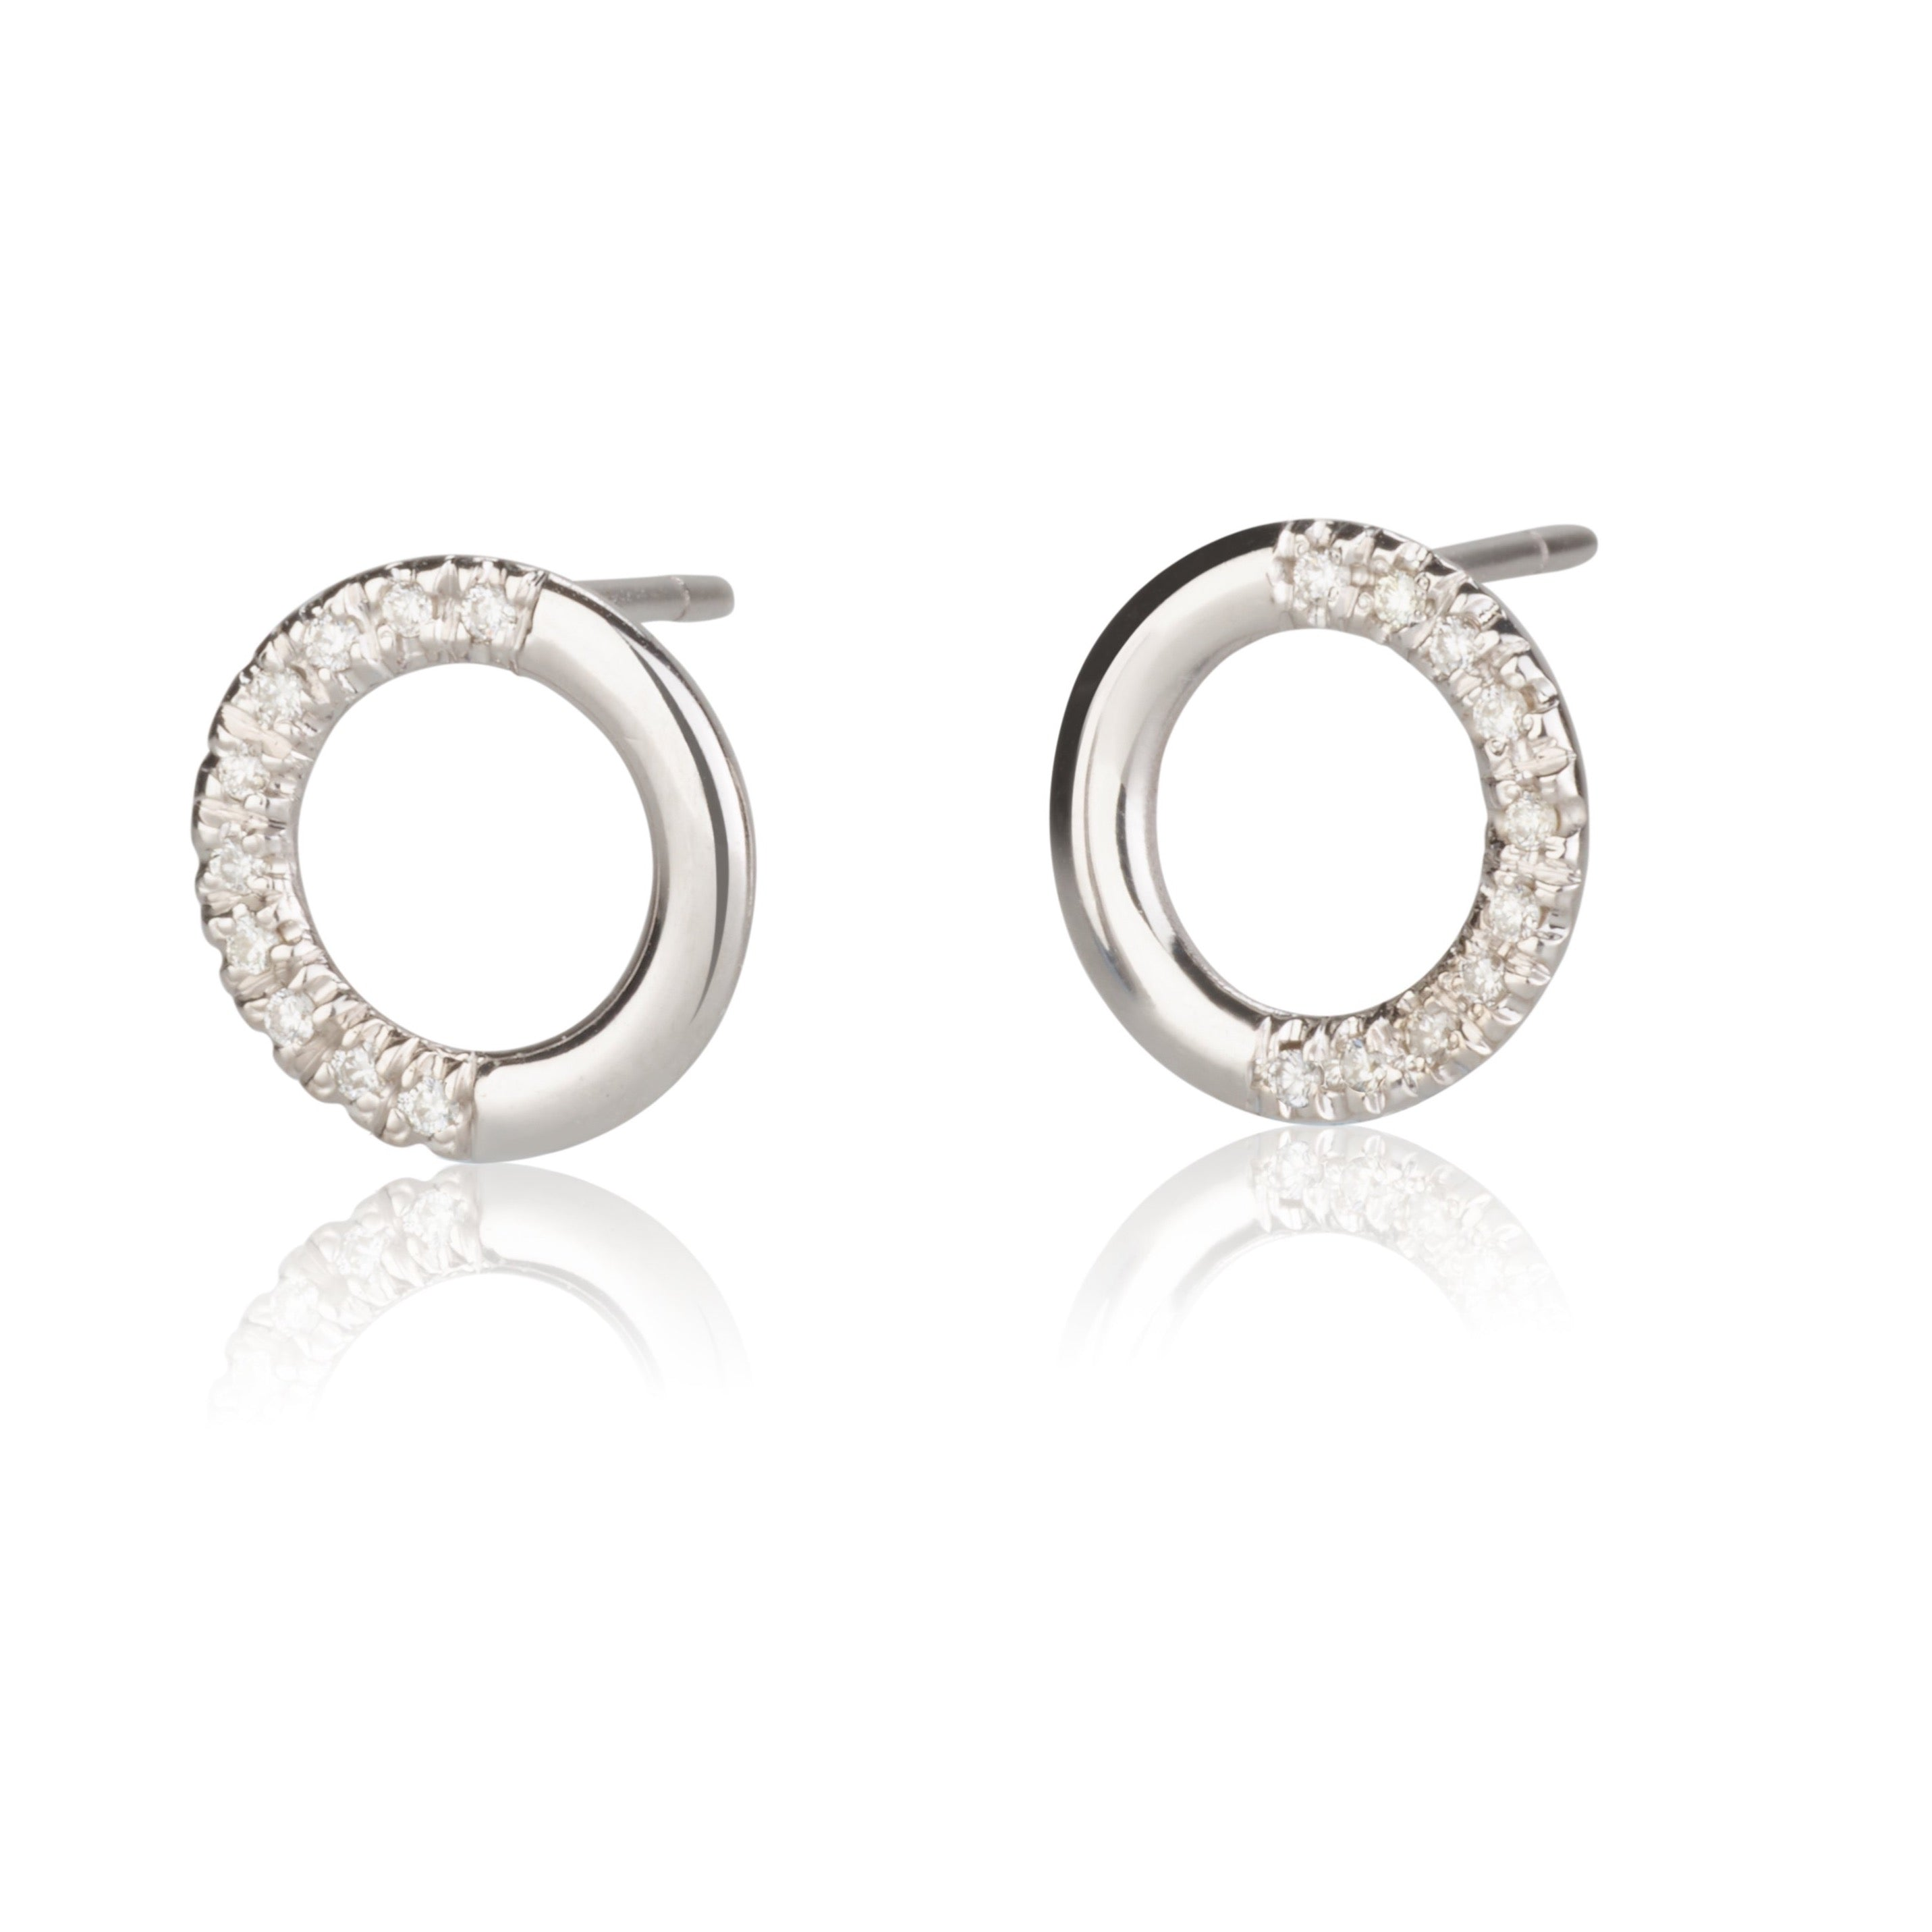 Half & Half - Perfectly Rounds Set With Diamonds